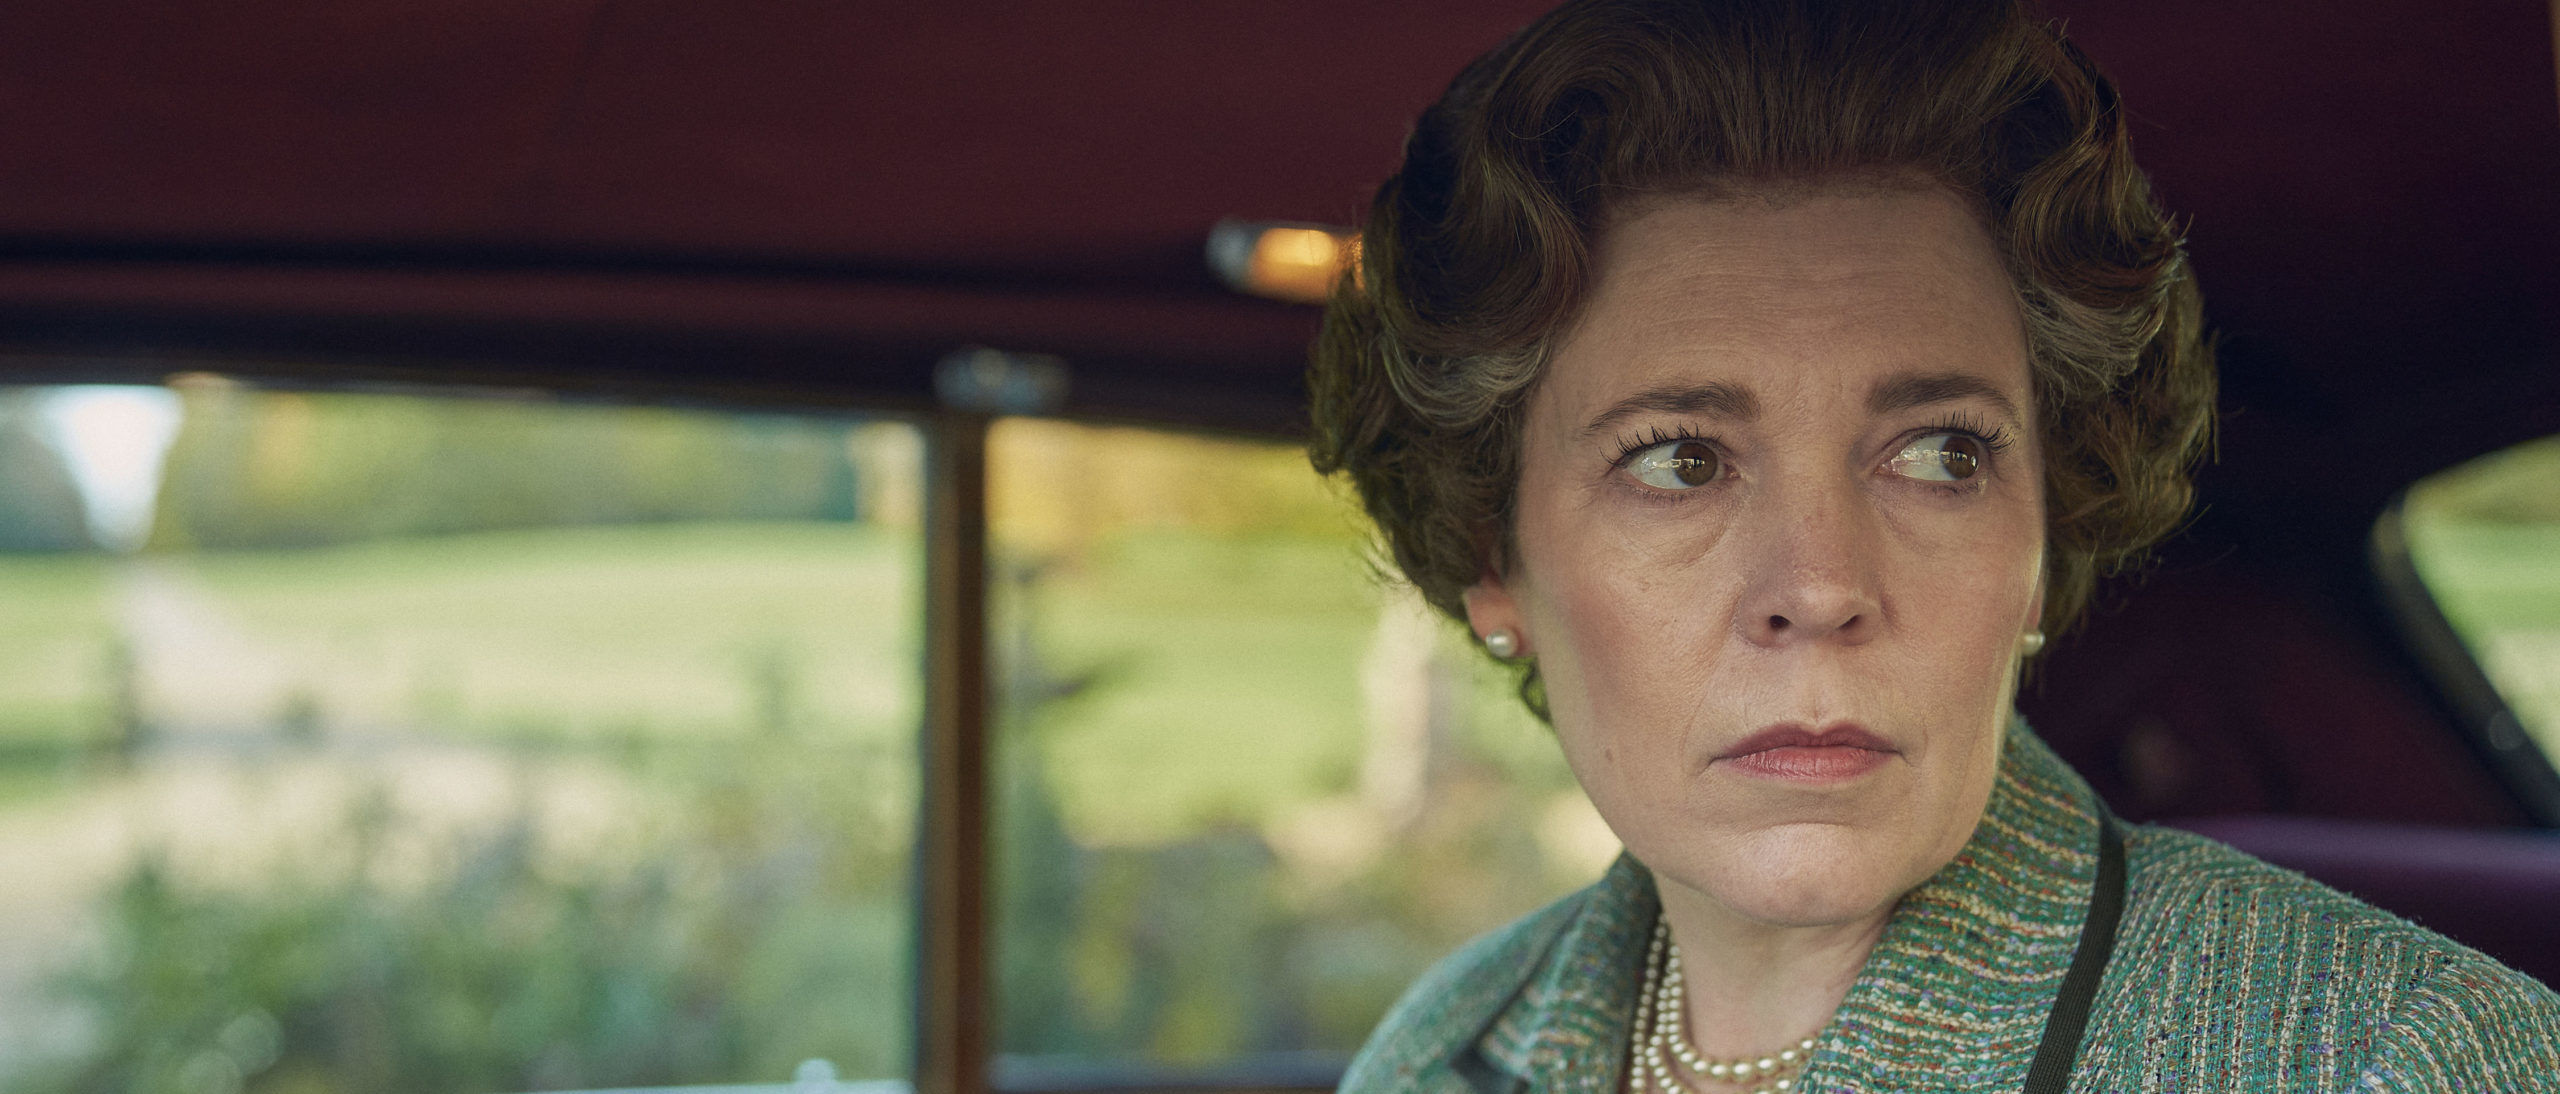 The Crown S4 Netflix Top TV shows Of 2020